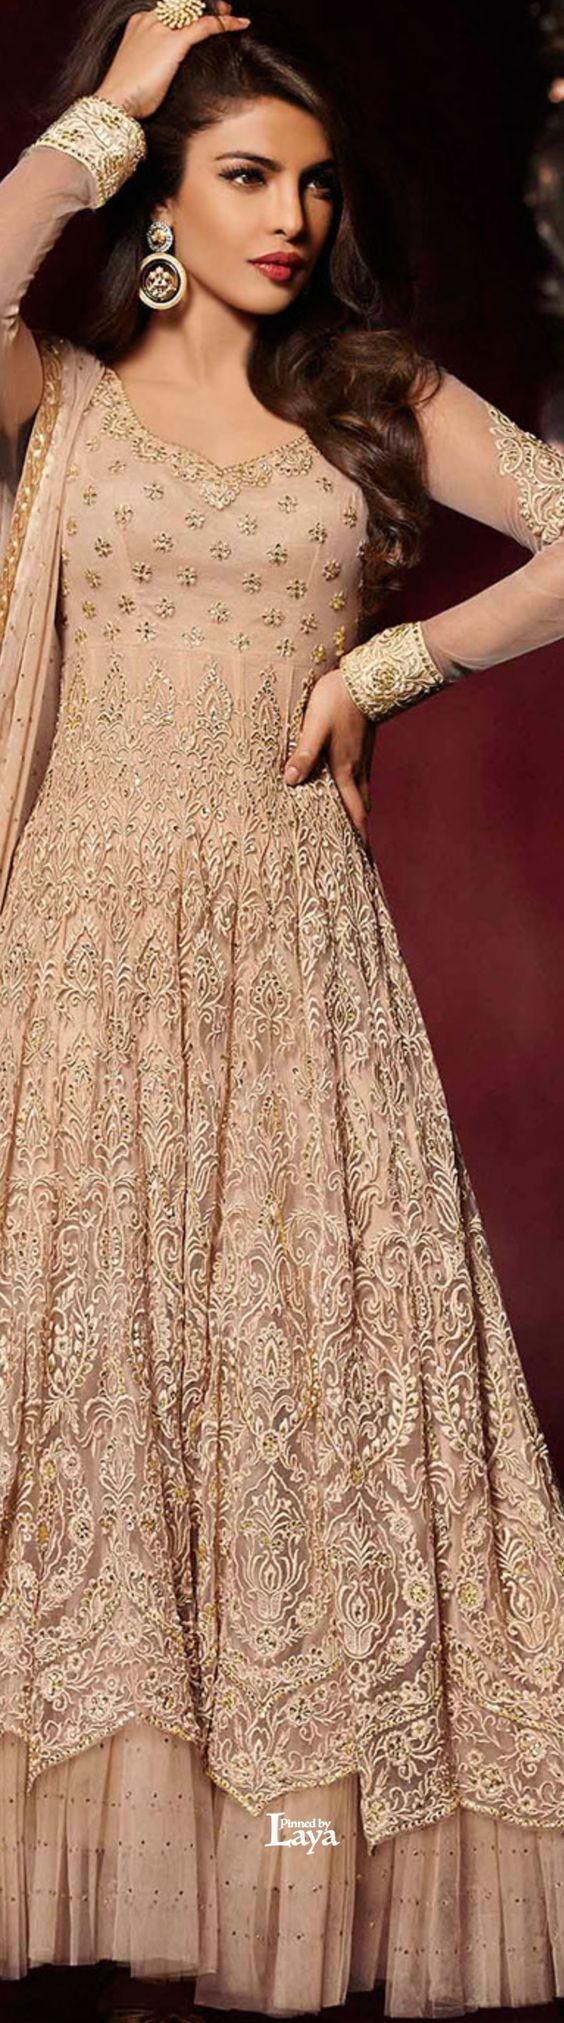 Party Wear & Wedding Wear Frocks Collection For Girls 2016-2017 (34)